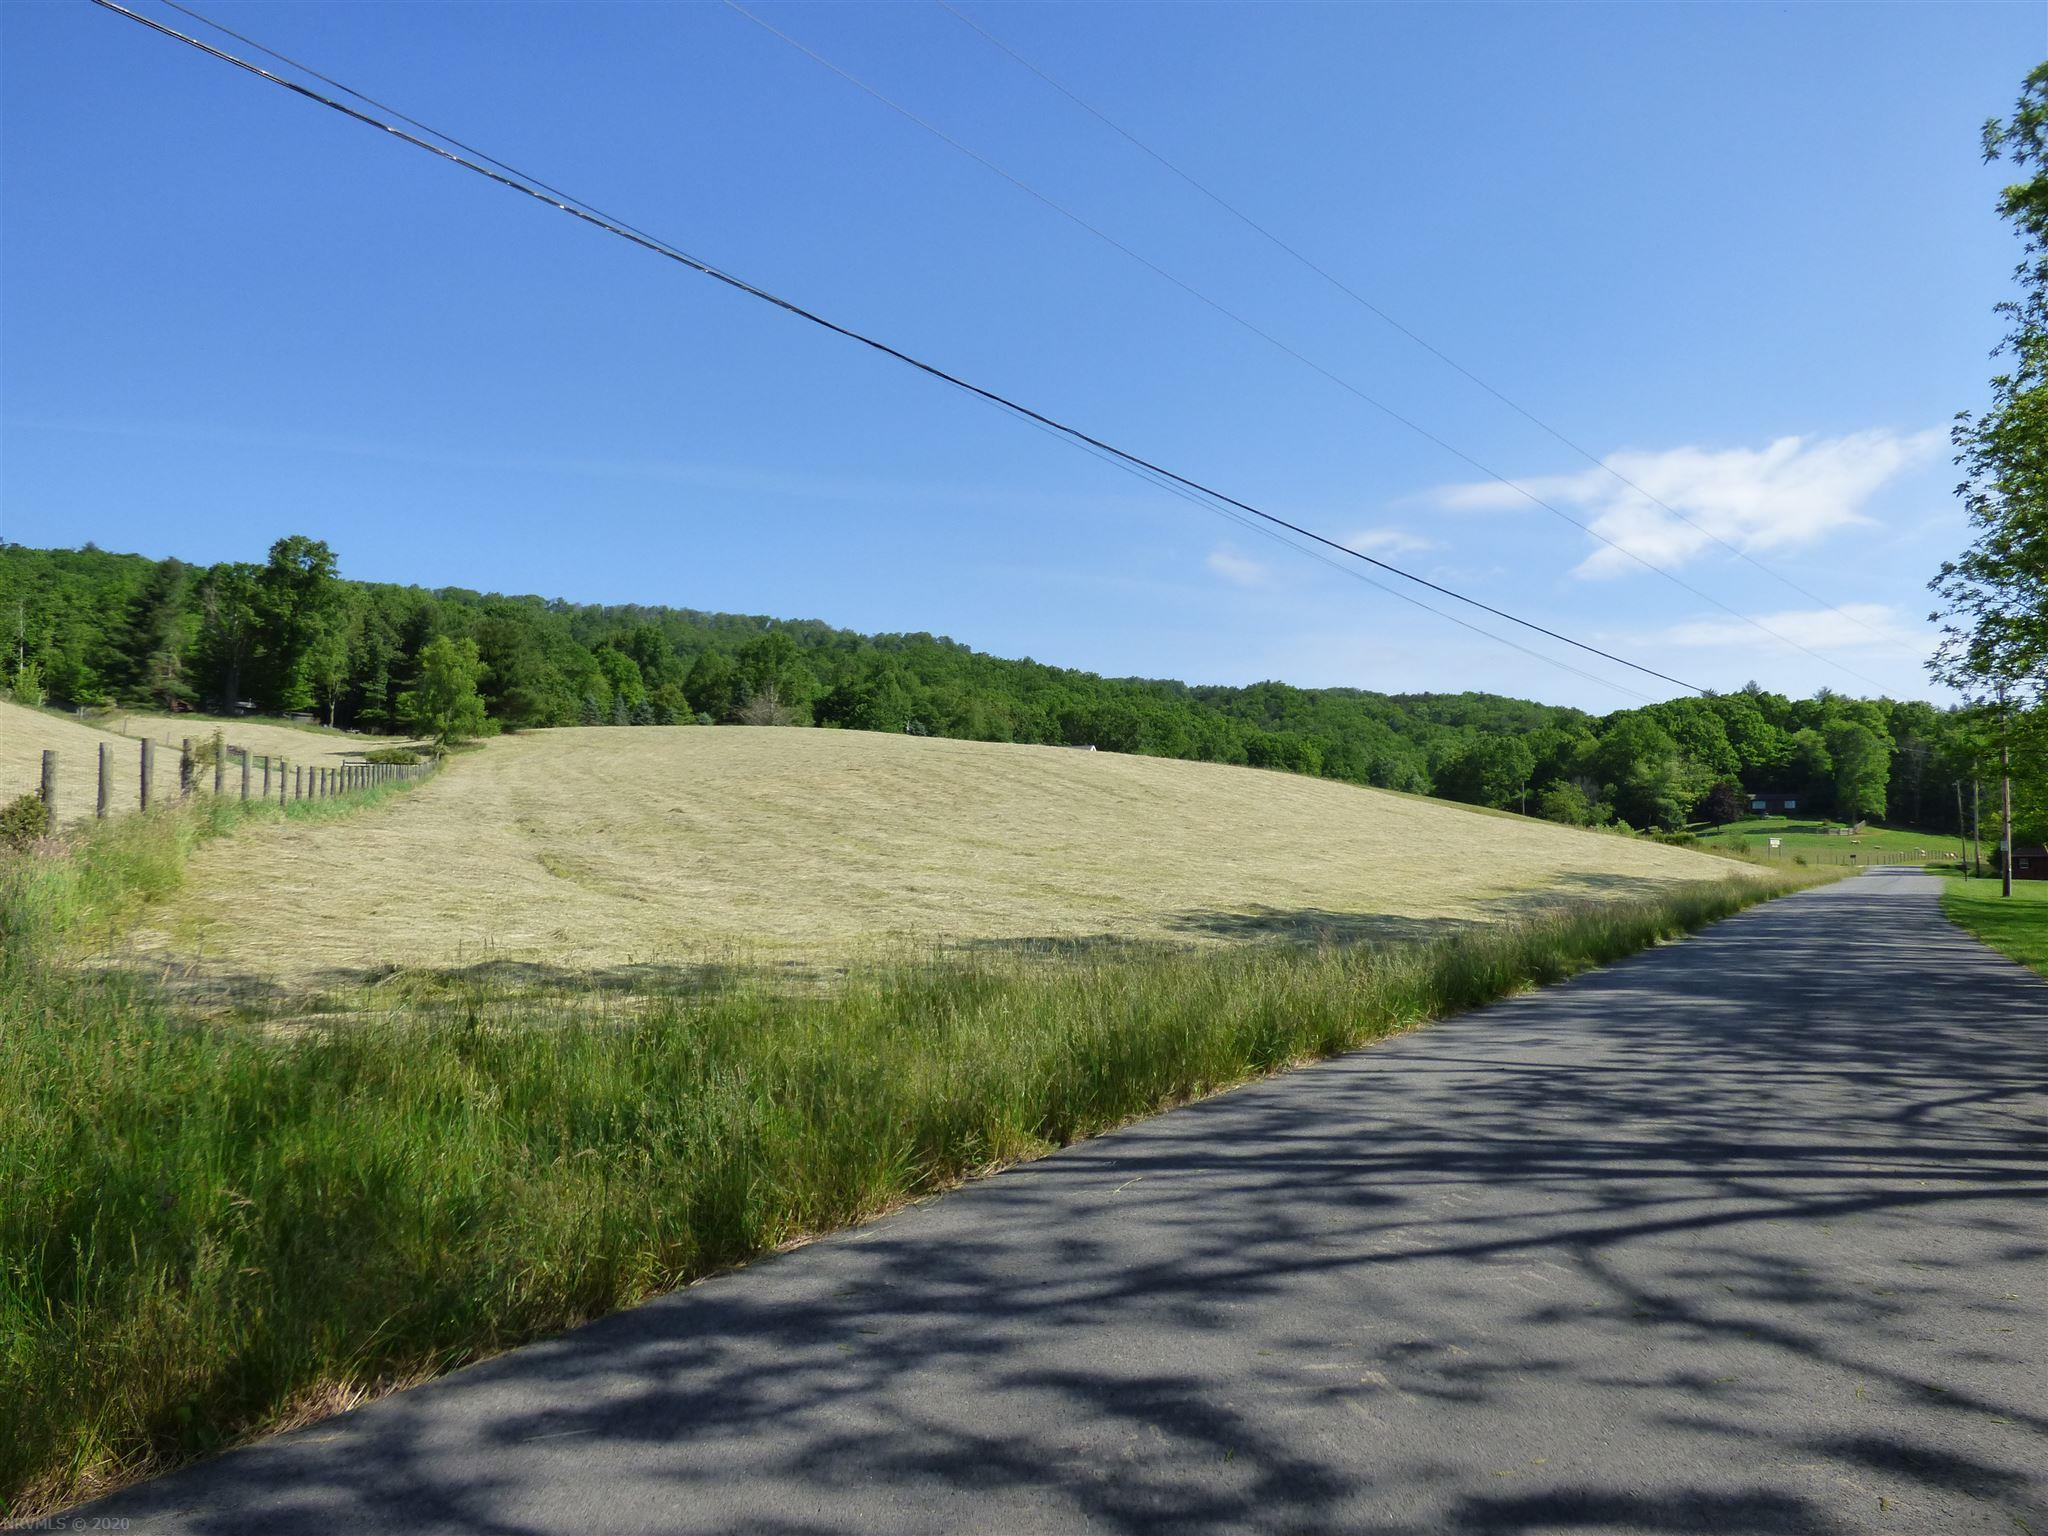 Location, location, 15 acres joining National Forest in the beautiful Fairview section of Wythe County. Land is partially opened, great for horses, or recreational use. Home is in excellent condition, with additional building sites.